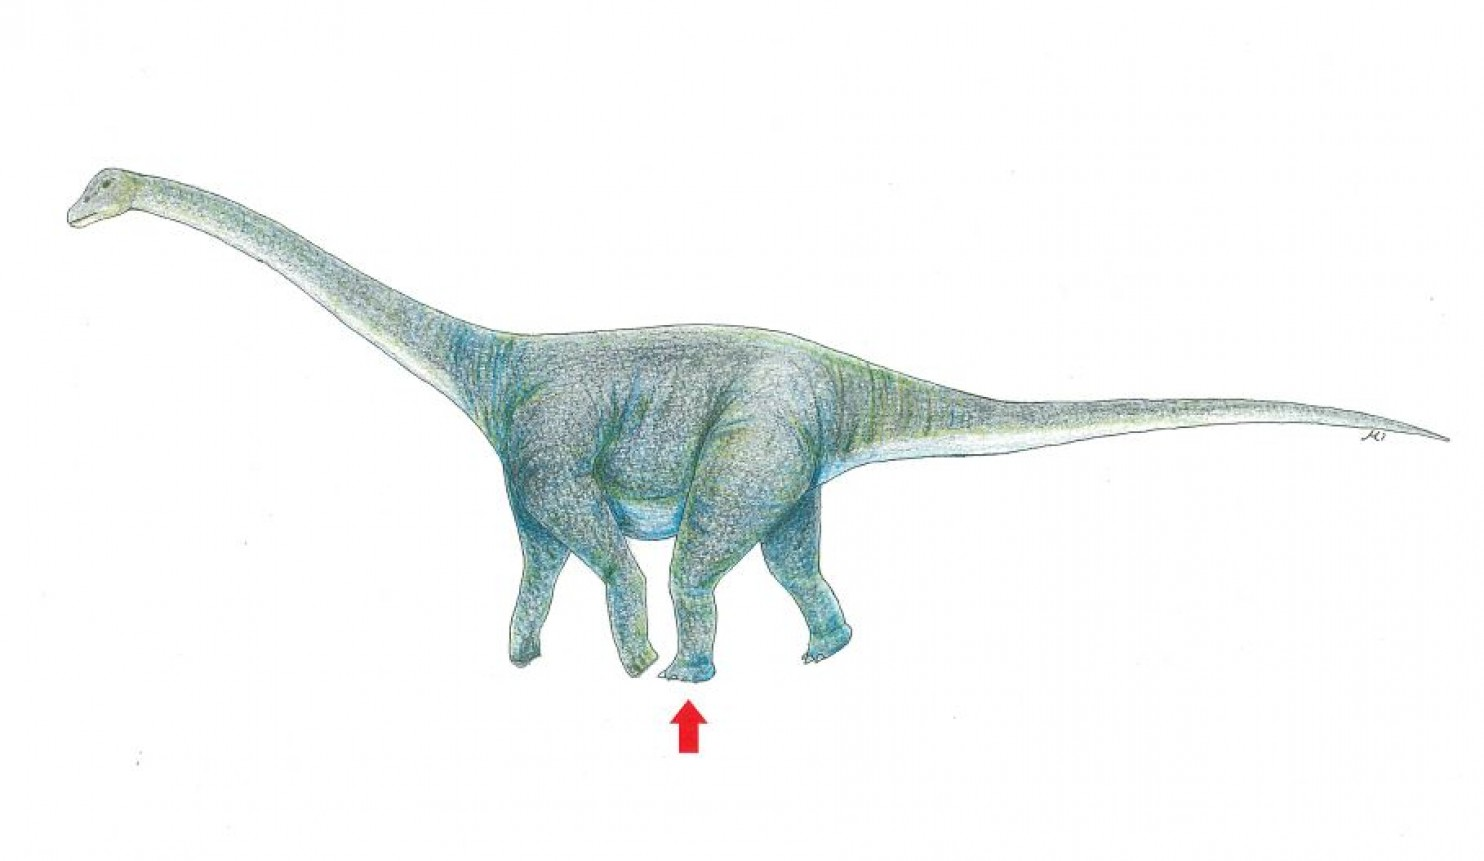 An artist's rendition of what kind of dinosaur may have left this massive footprint.